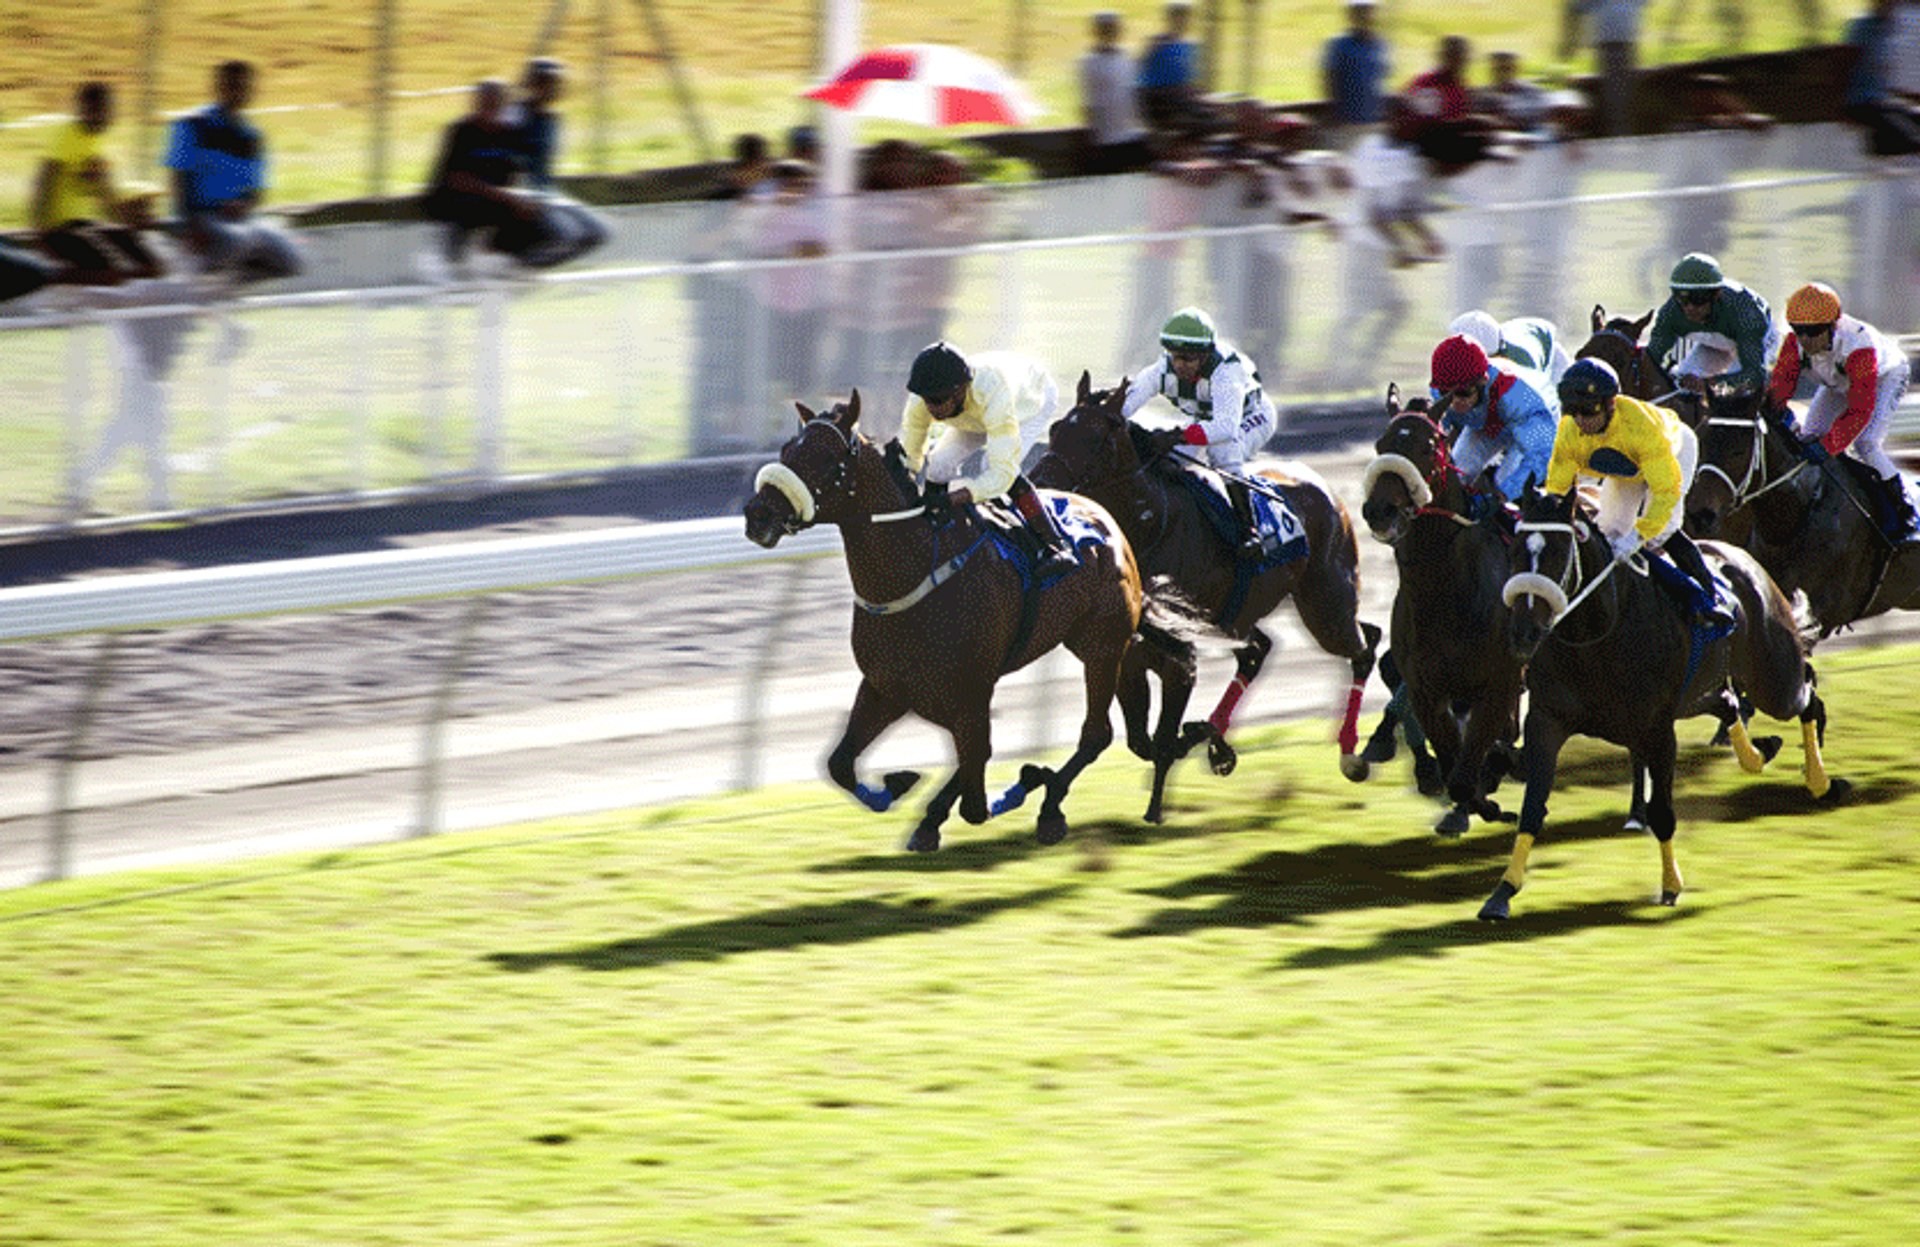 Horse Racing in Mauritius - Best Season 2020